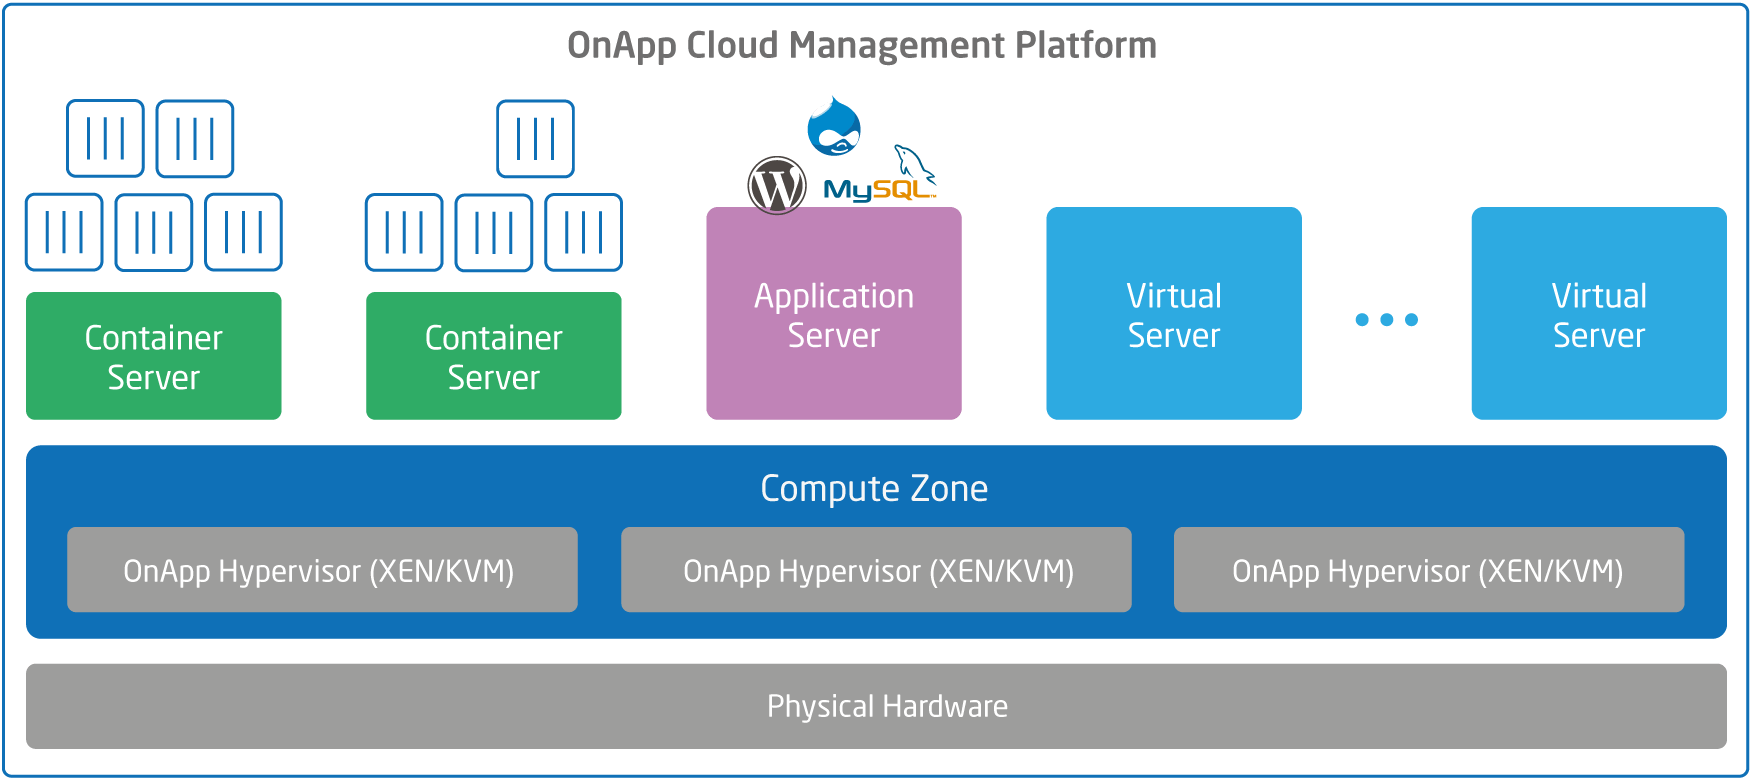 What's new in OnApp v5.1?